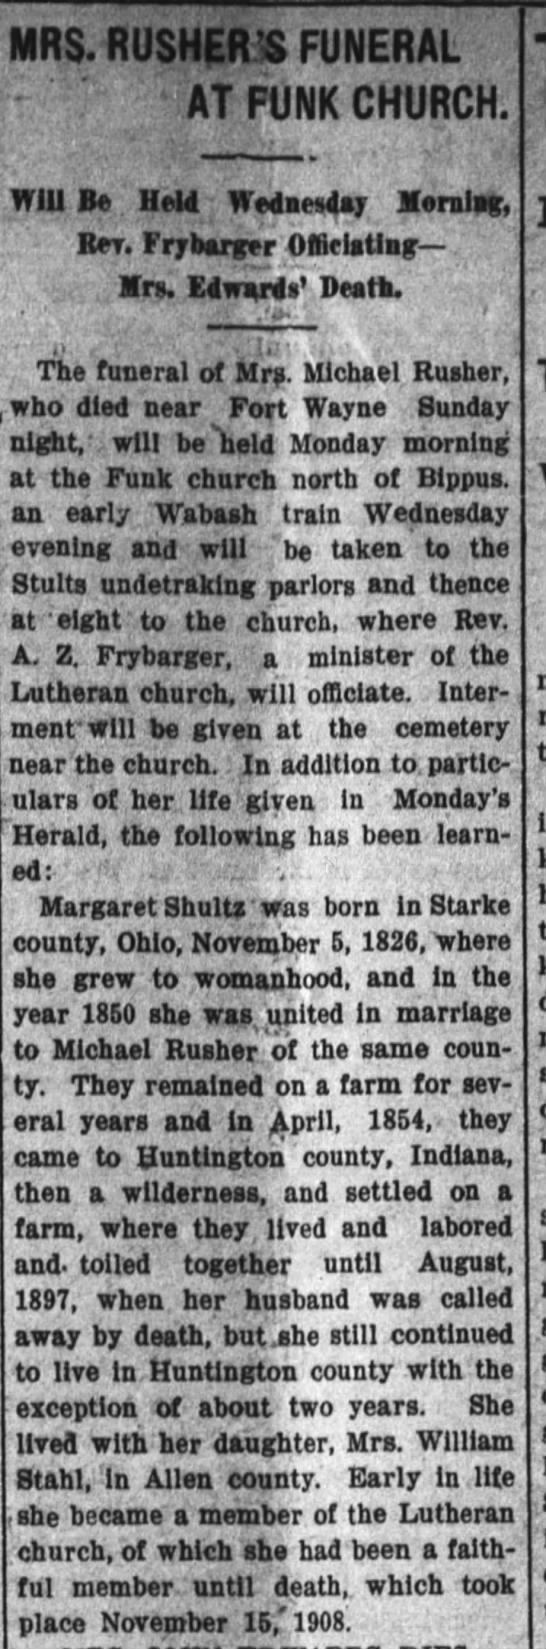 Margaret Shultz Rusher-death; The Huntington Herald, Nov. 17, 1908 page 2 -